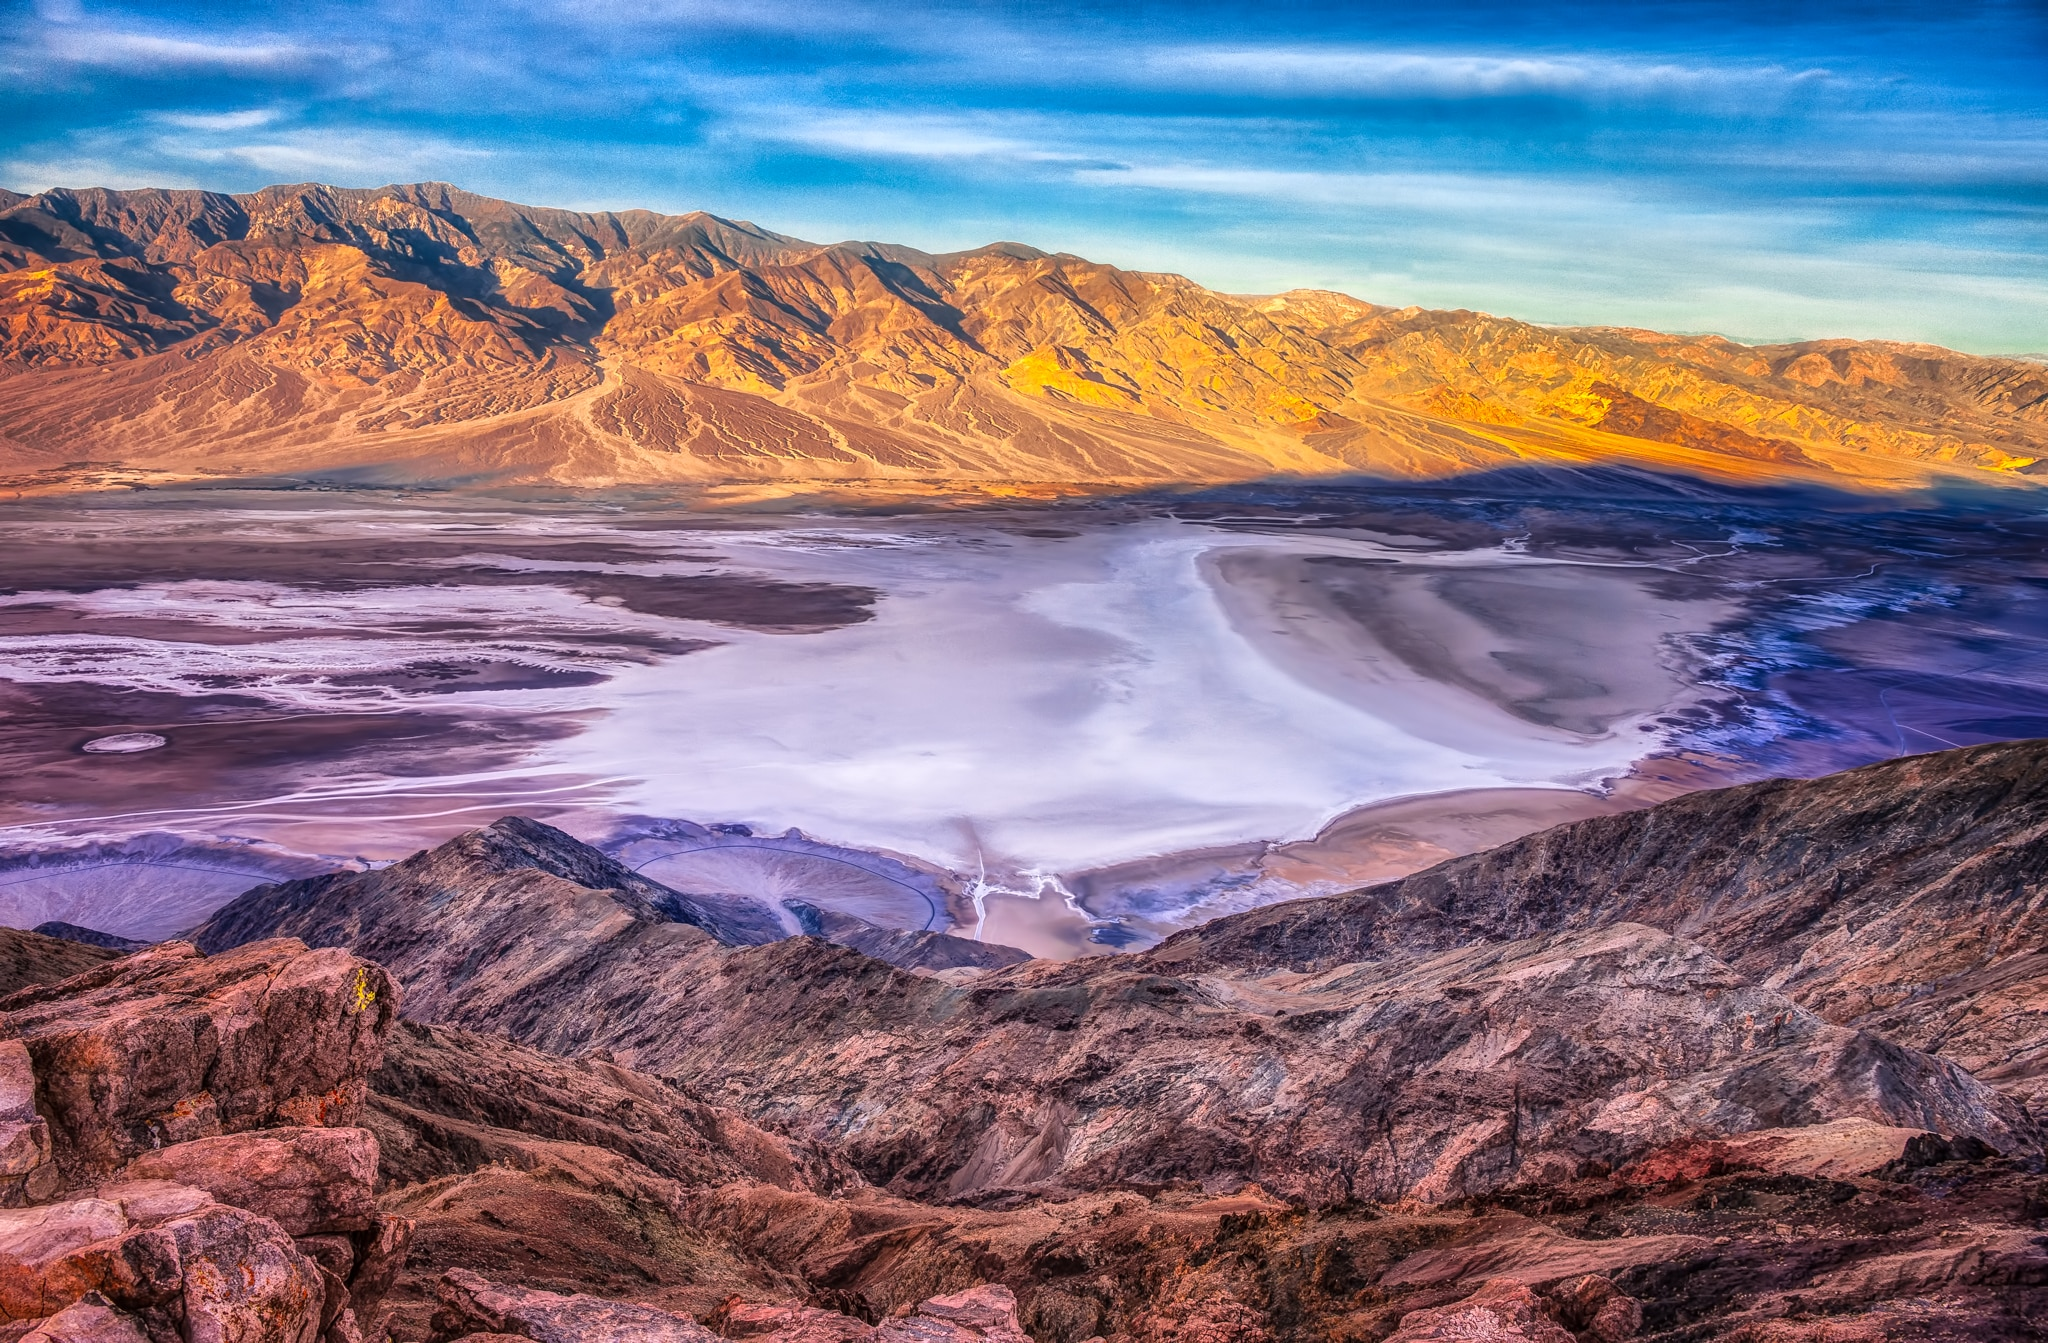 Photographs Of Death Valley National Park In Winter